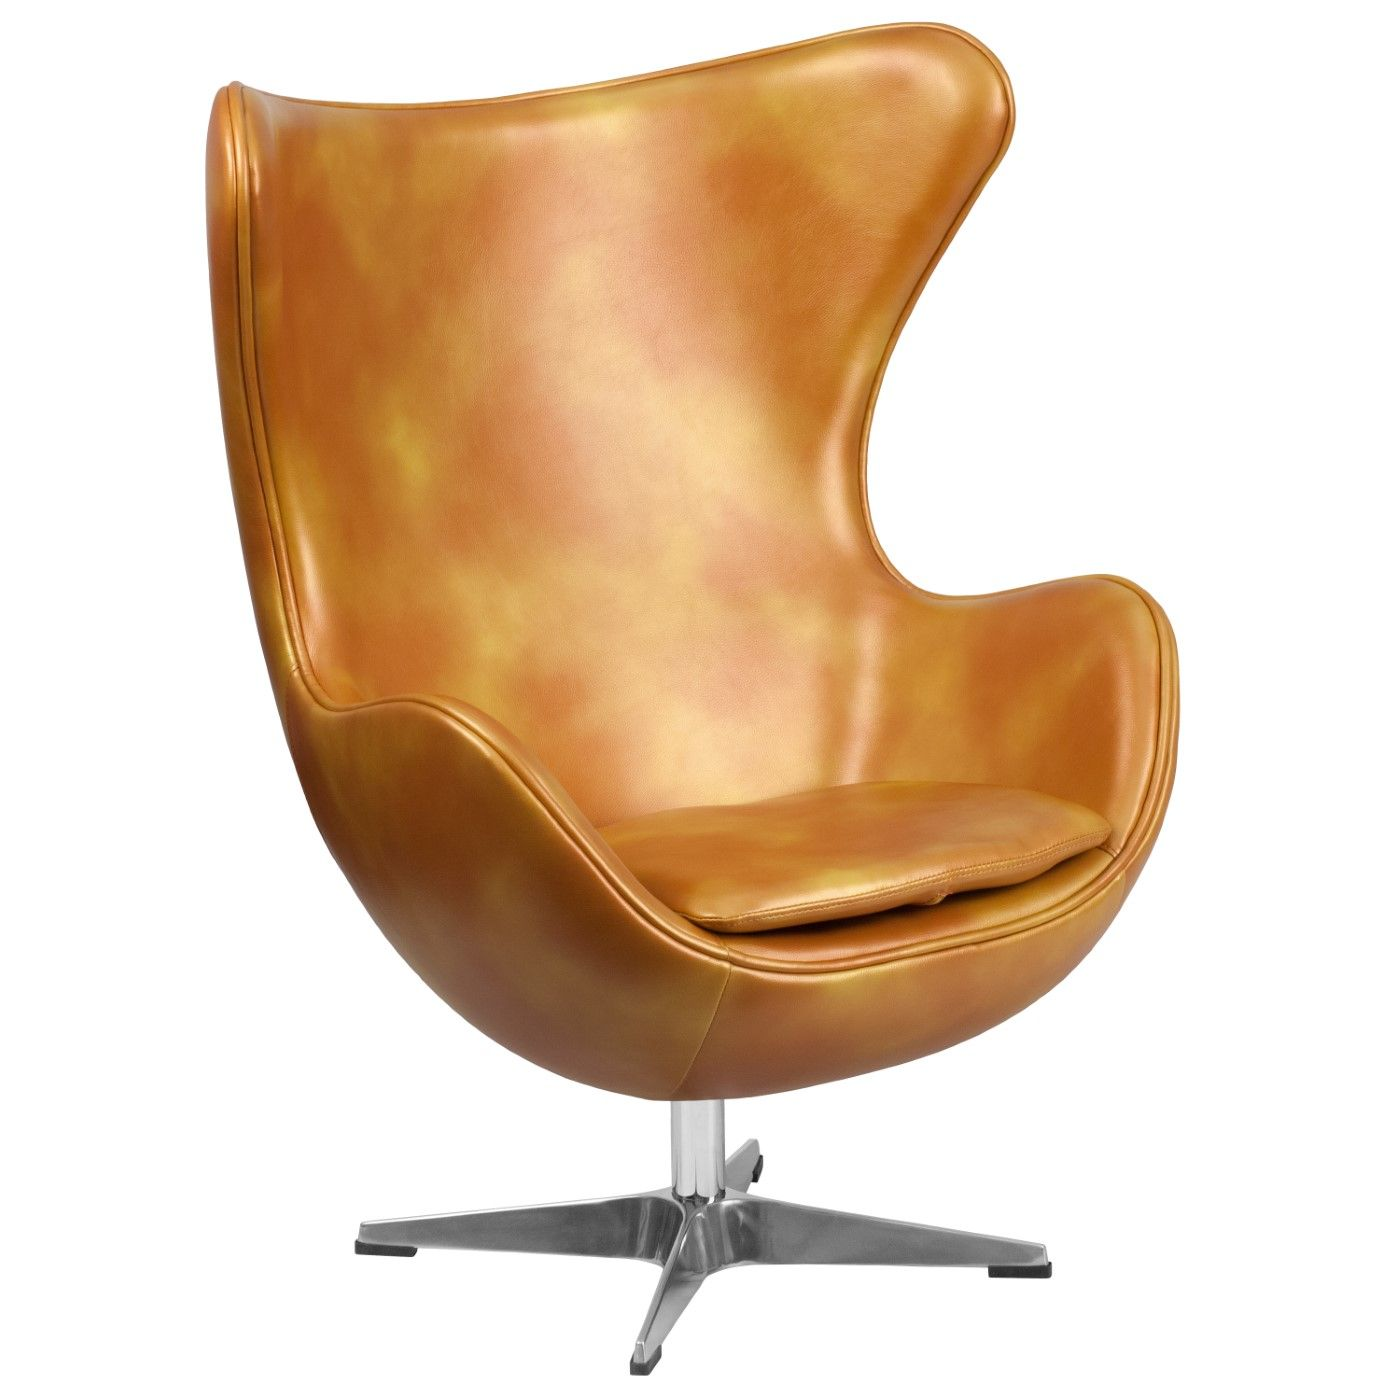 Gold LeatherSoft Egg Chair with Tilt-Lock Mechanism